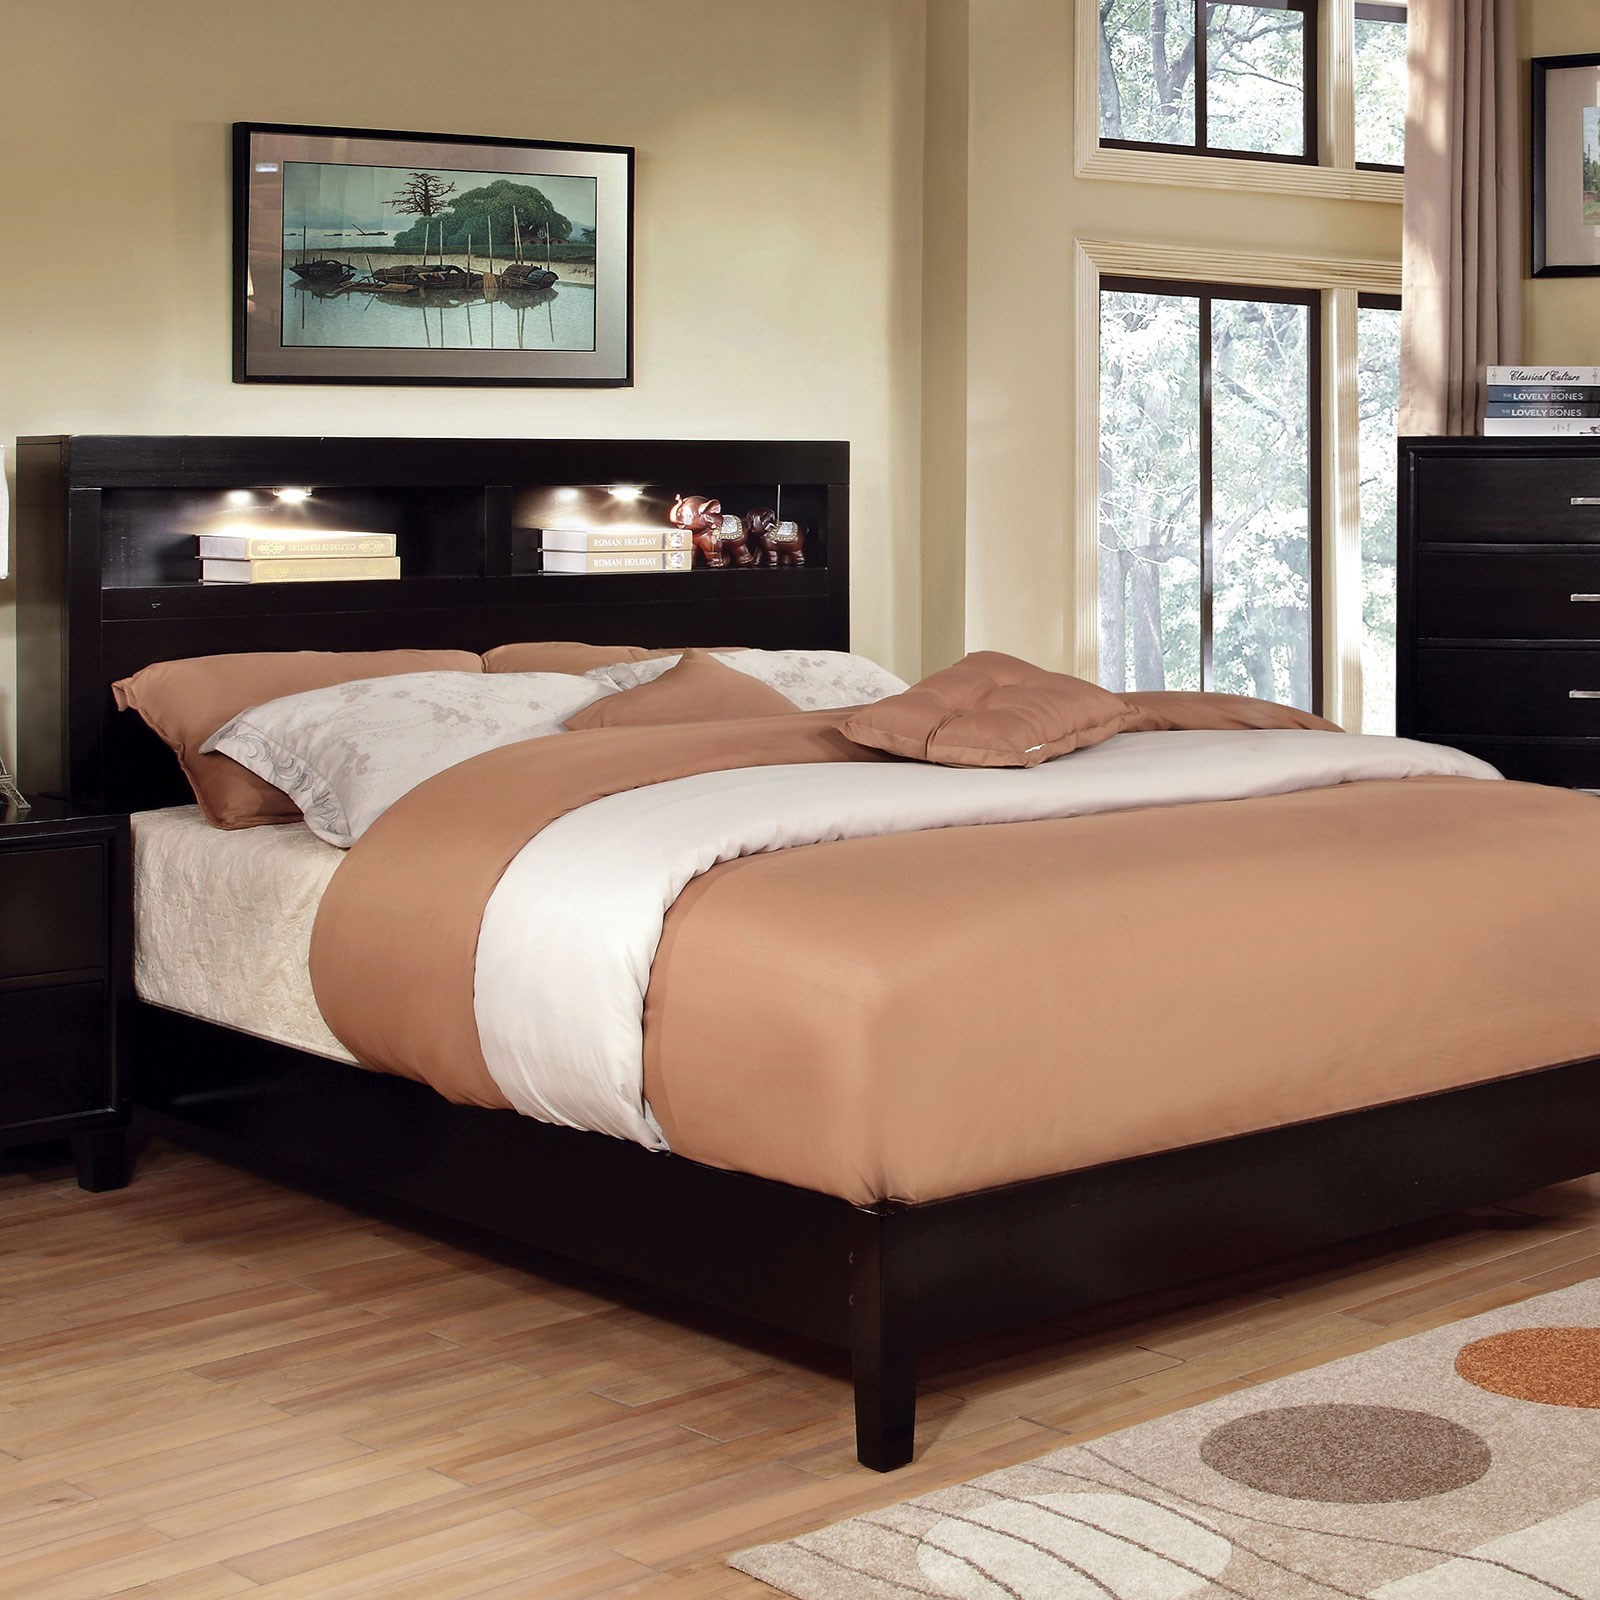 Gerico I Queen Bookcase Bed by Furniture of America at Nassau Furniture and Mattress